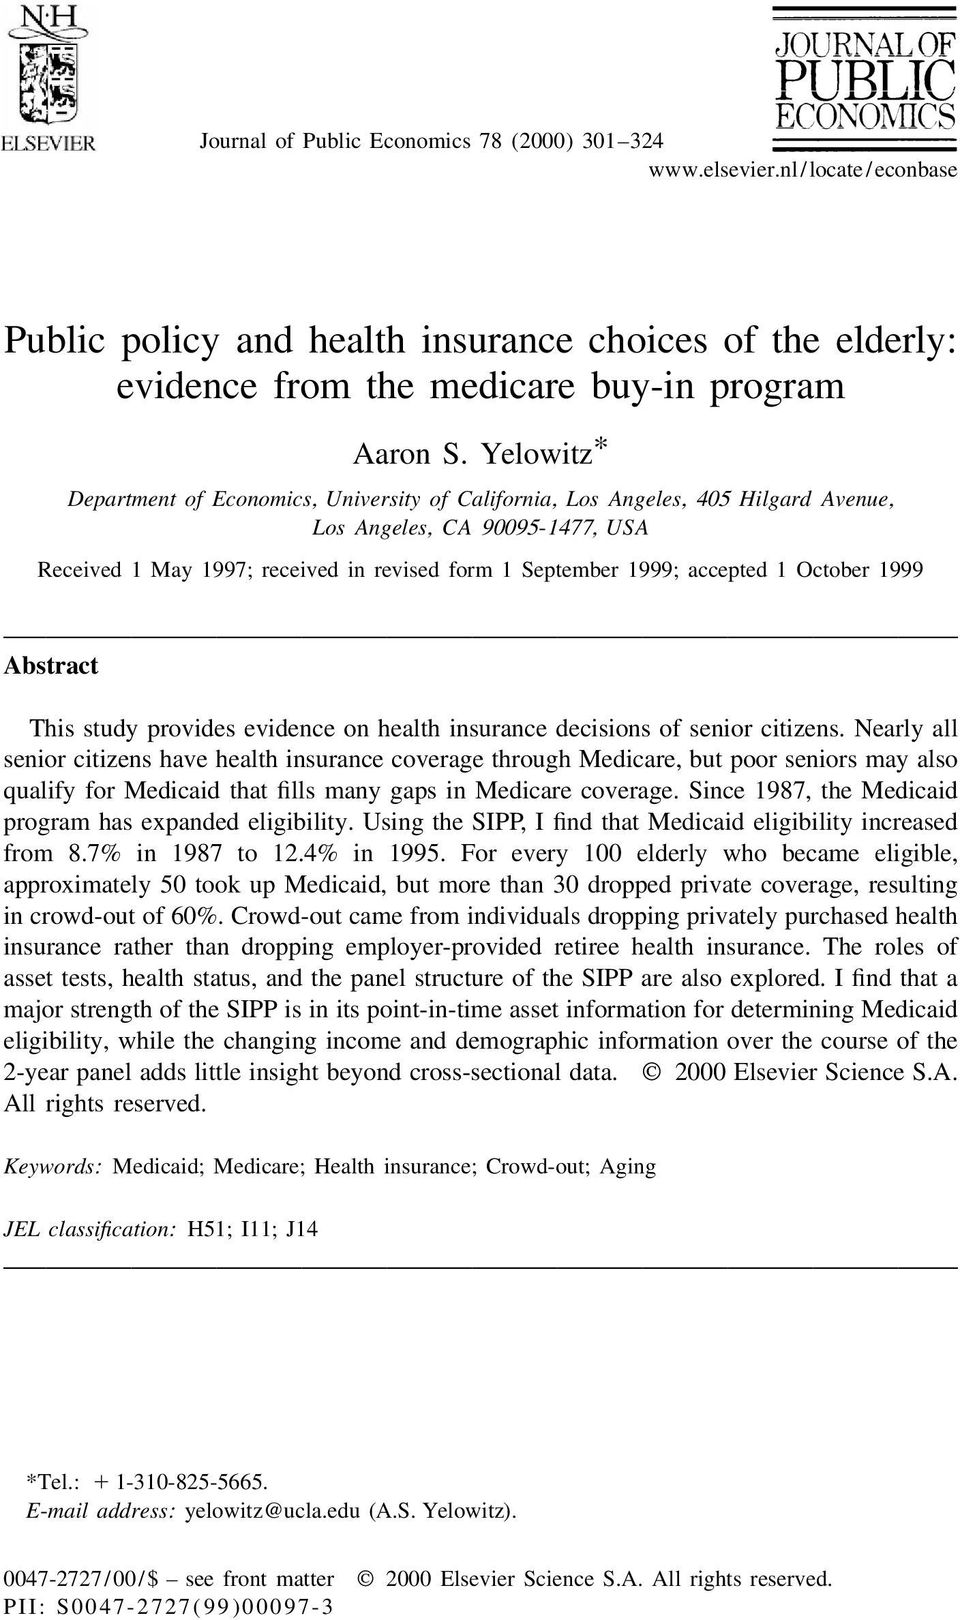 1 October 1999 Abstract This study provides evidence on health insurance decisions of senior citizens.